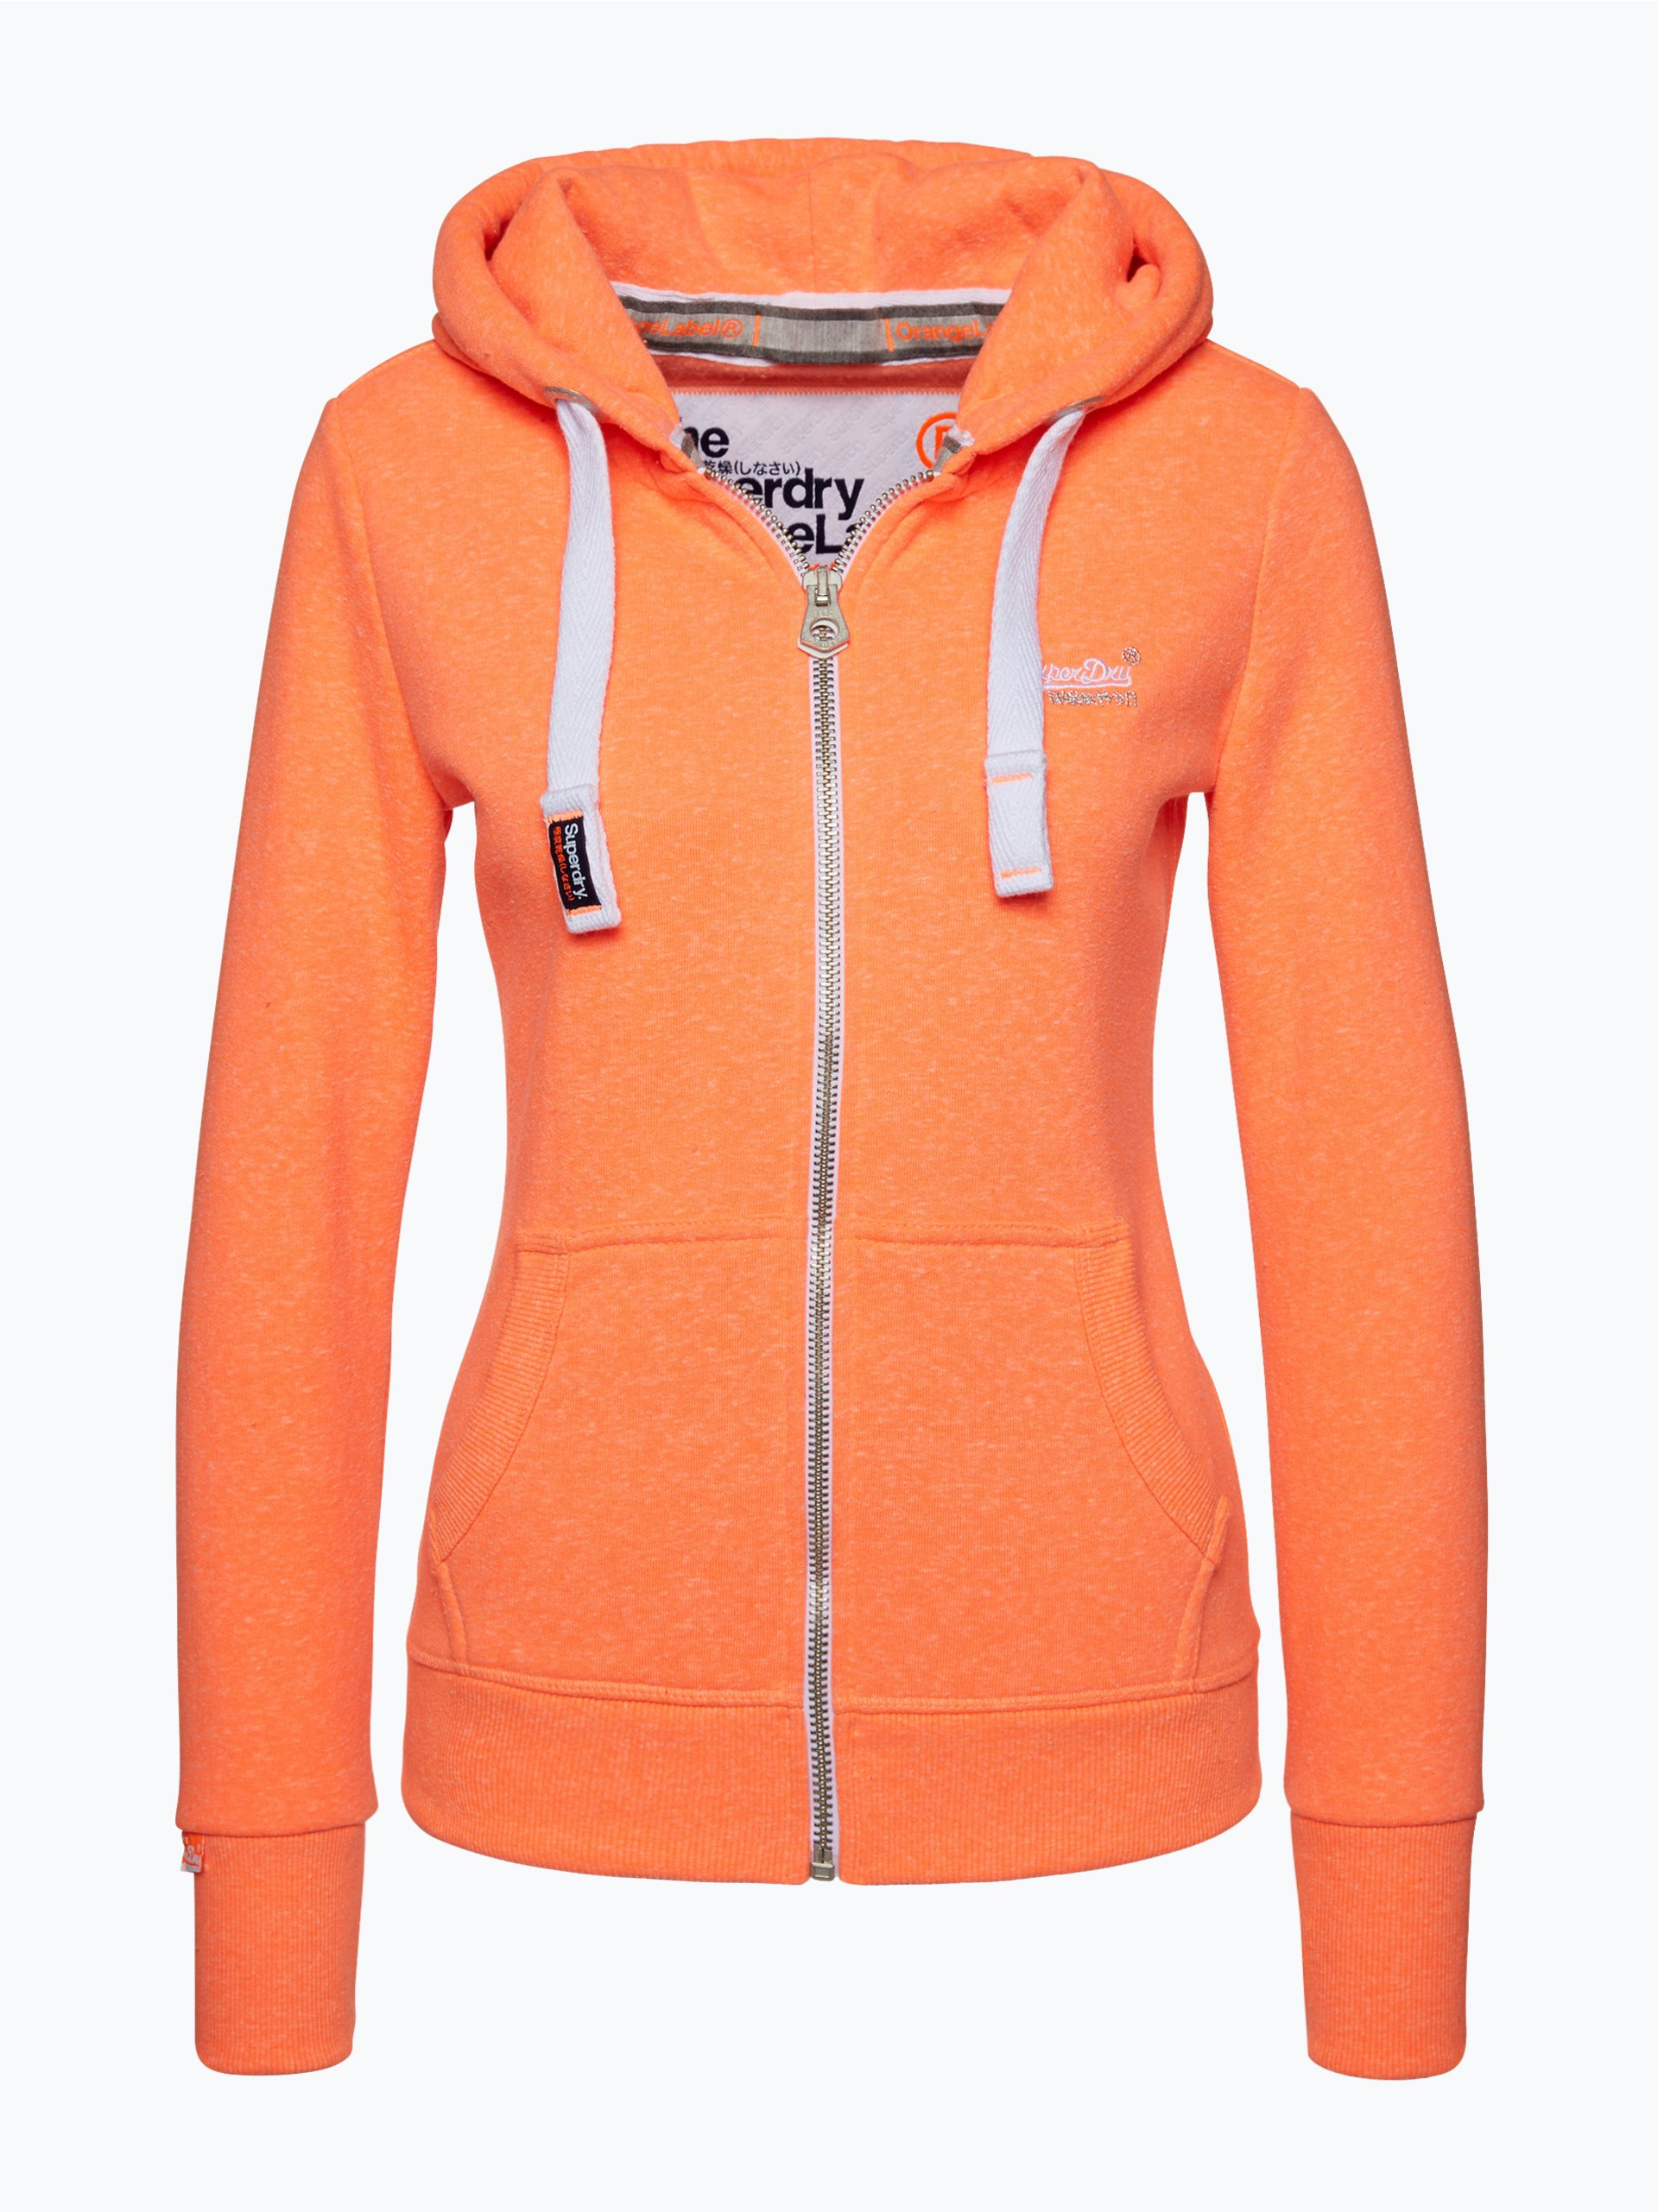 superdry damen sweatjacke orange uni online kaufen. Black Bedroom Furniture Sets. Home Design Ideas